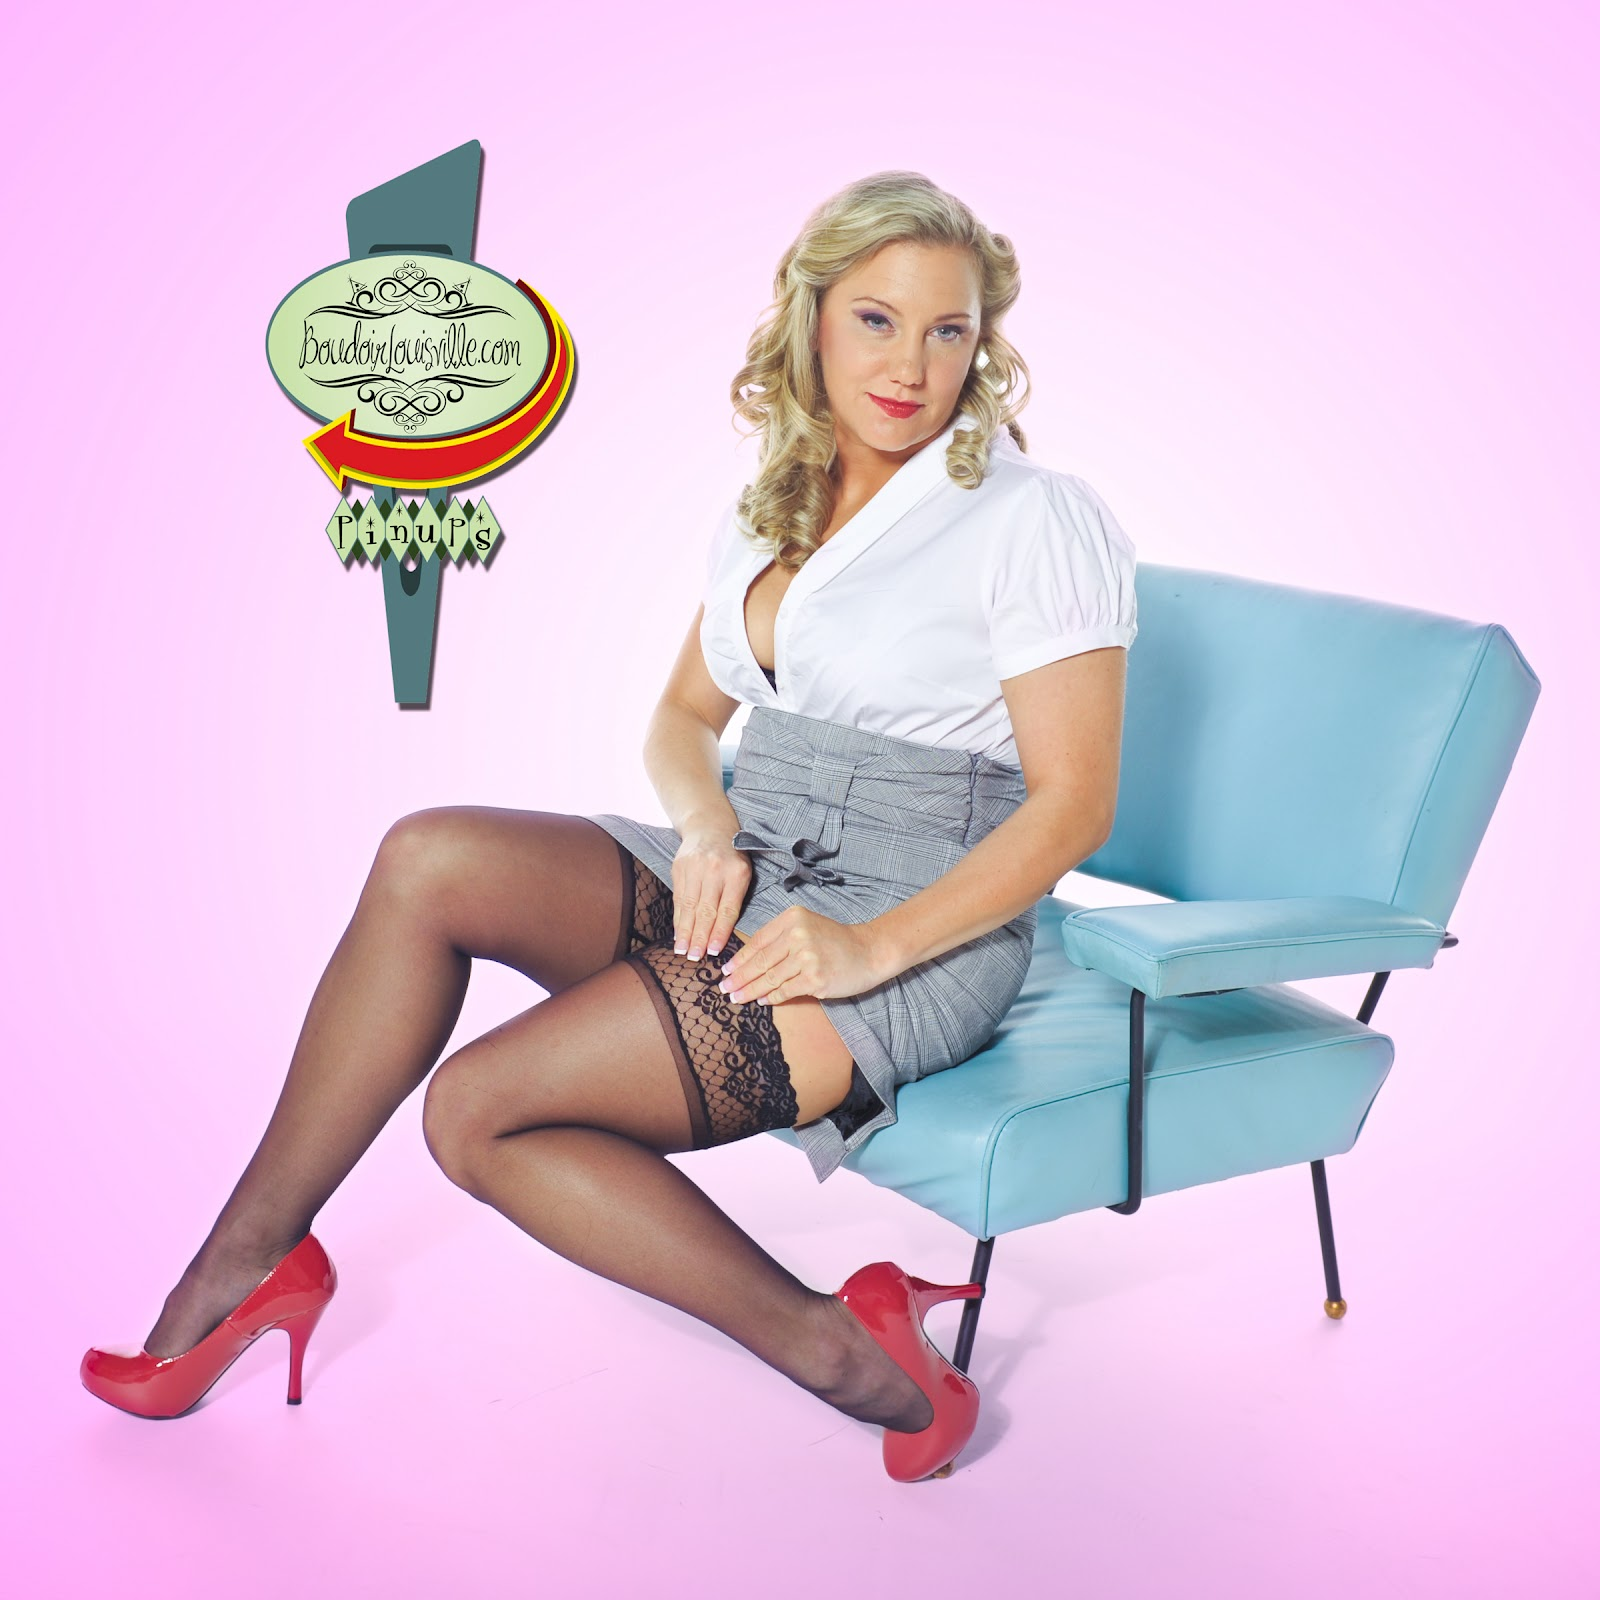 Louisville Boudoir And Pinup Photographers March 2012